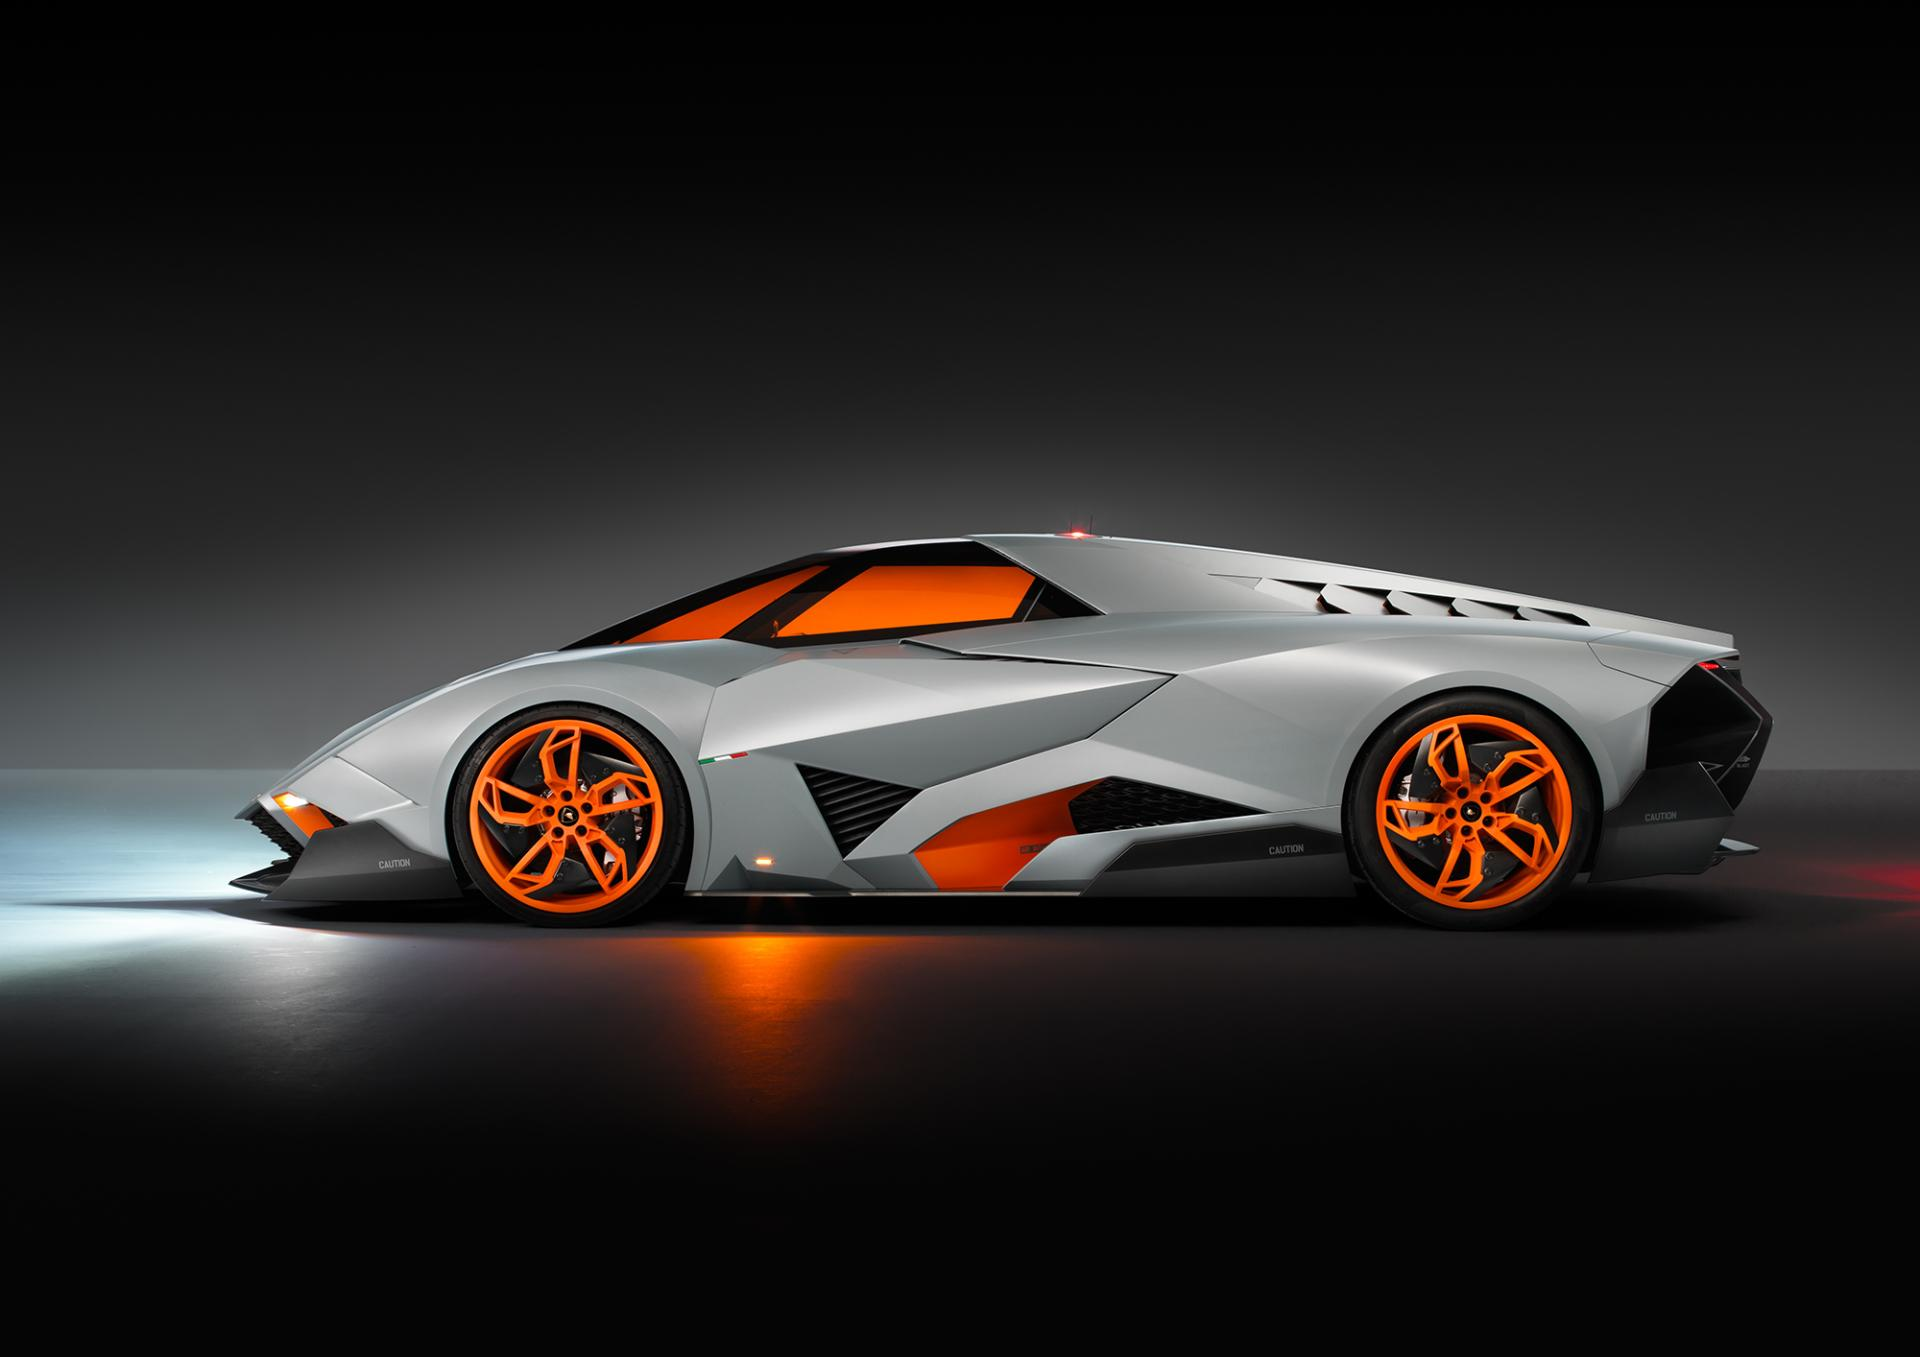 2013 Lamborghini Egoista Concept Technical Specifications and data. Engine, Dimensions and ...